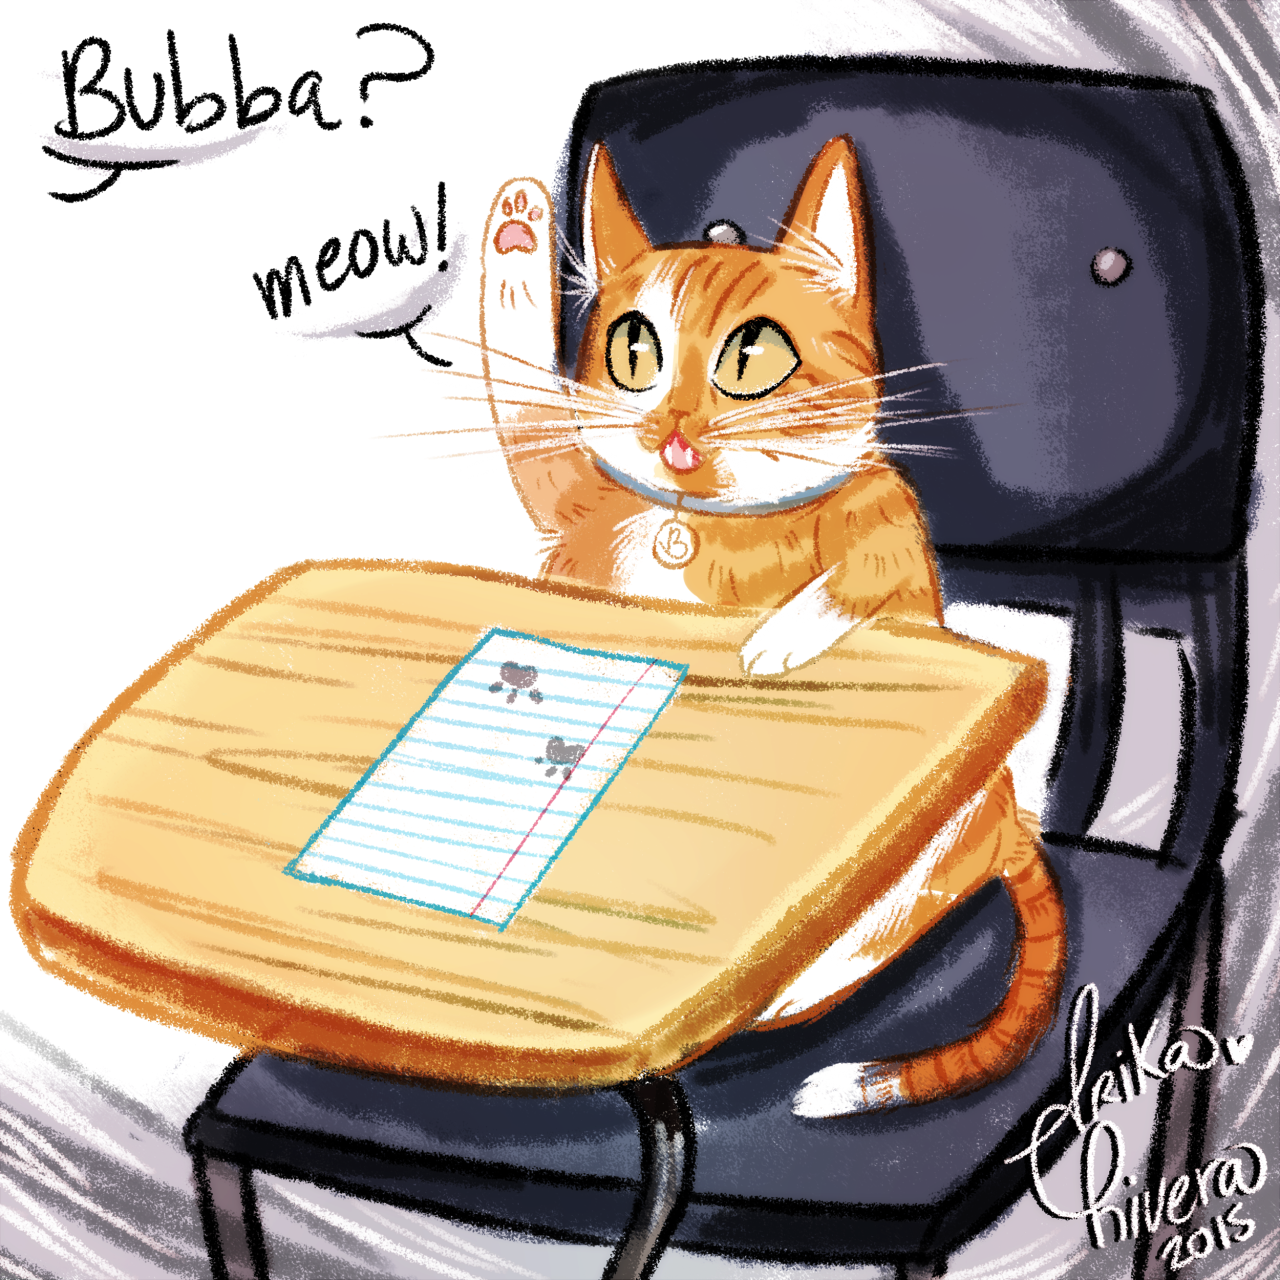 http://errr-ika.tumblr.com/post/127208489132/bubba-the-student-cat-3